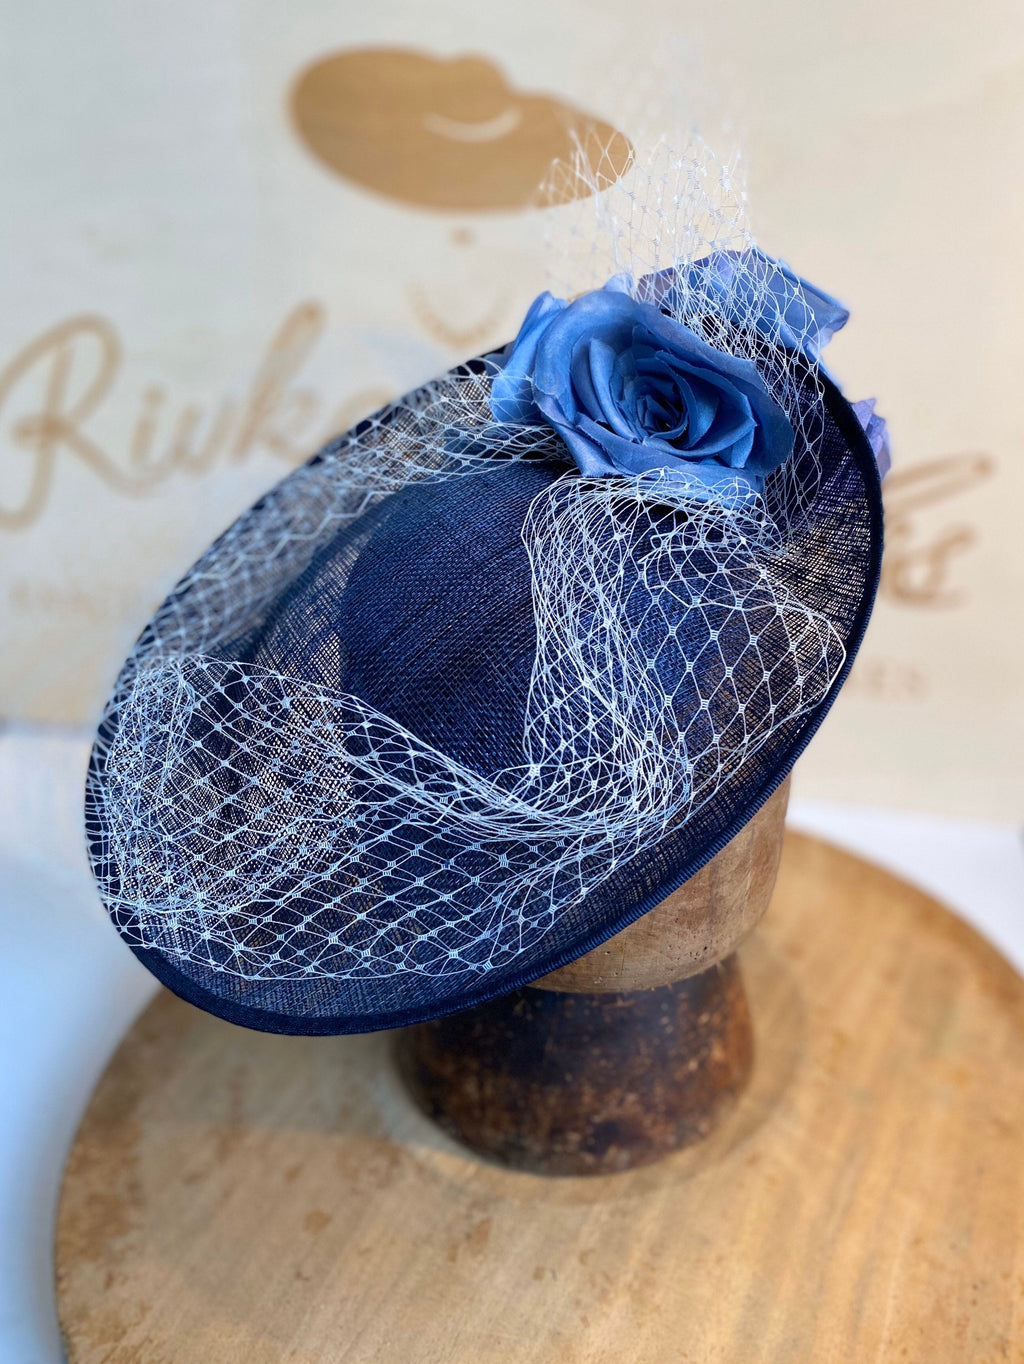 Navy saucer hat with light blue flowers and veiling.